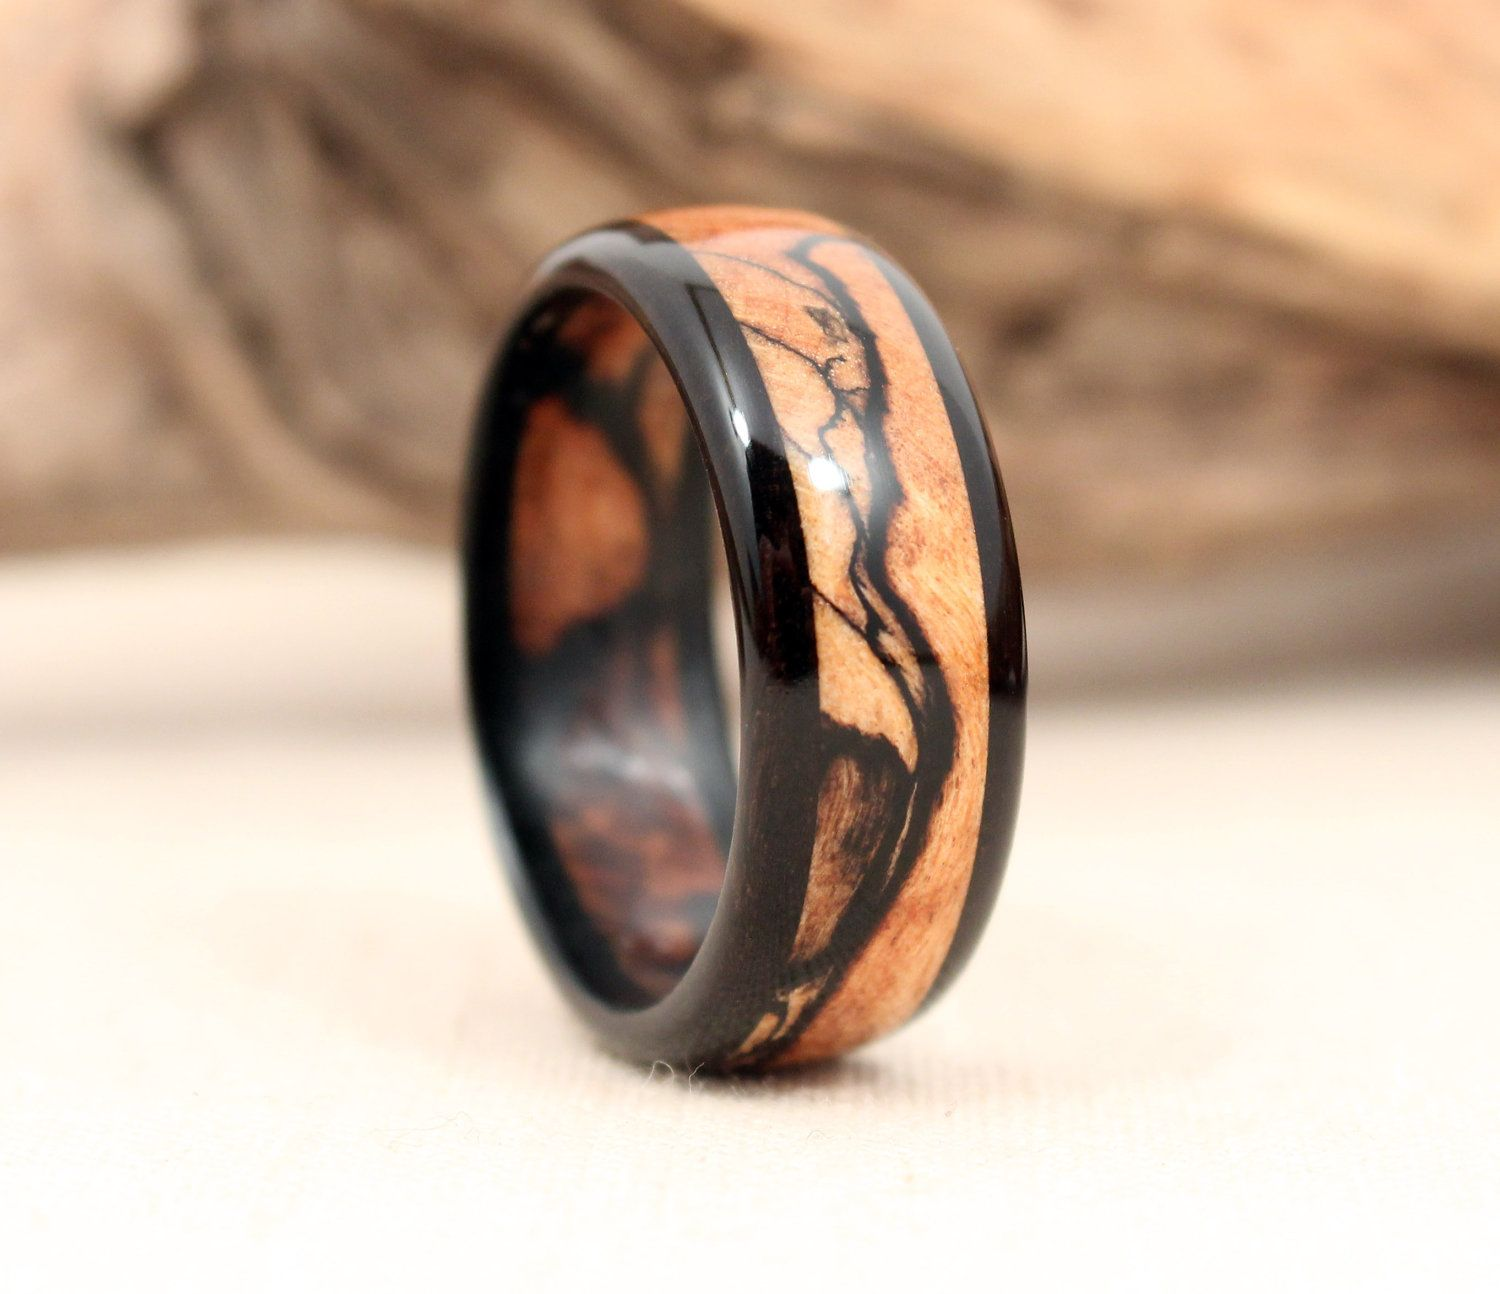 ring images projects holder wood on pinterest holders best wooden rings woodturning lathe earning